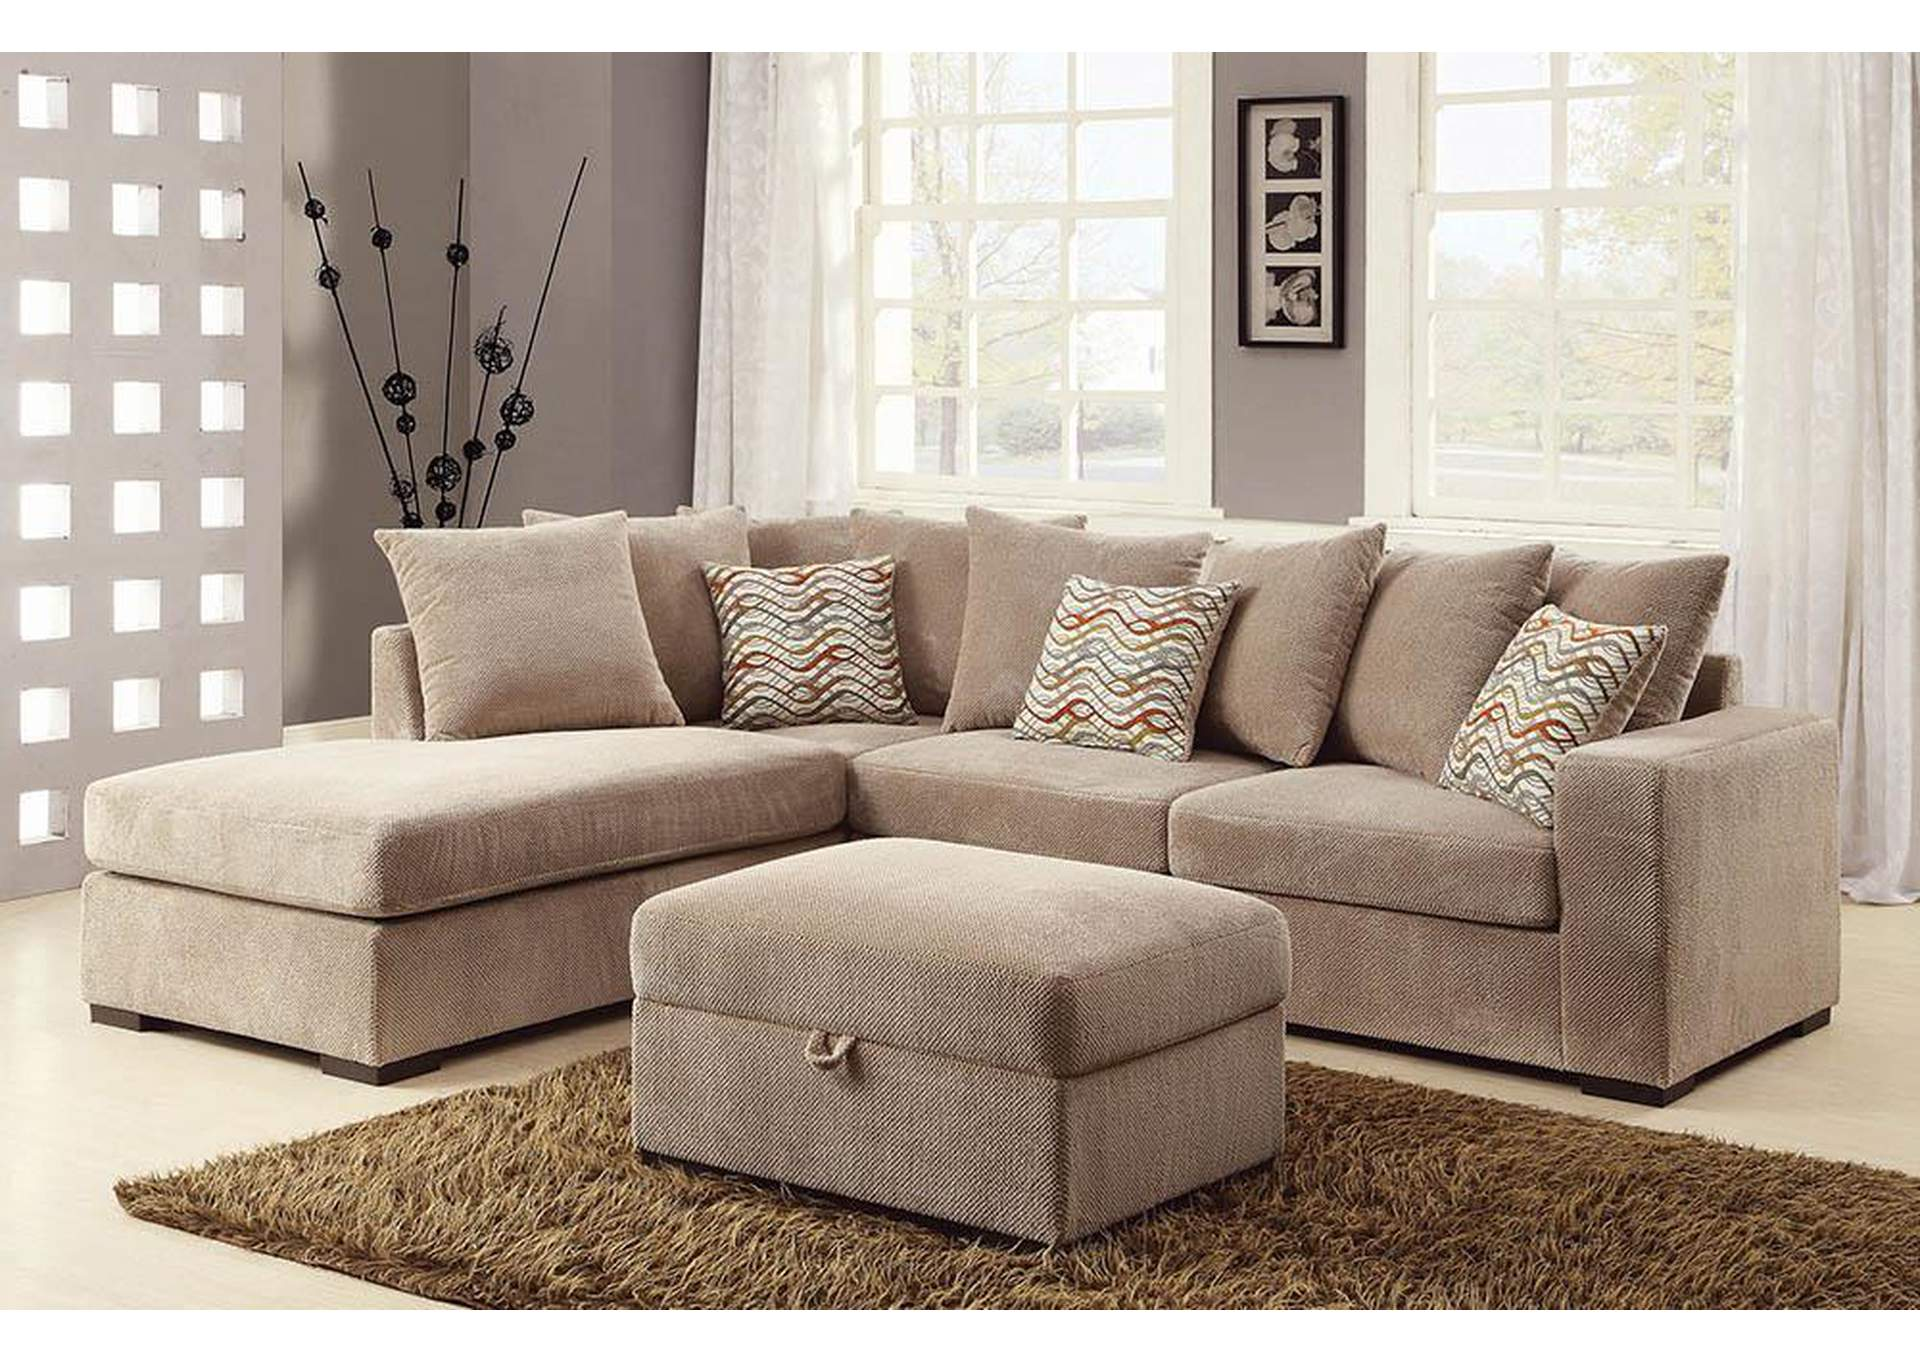 Quality Home Furniture At Affordable Prices In San Luis Obispo Ca